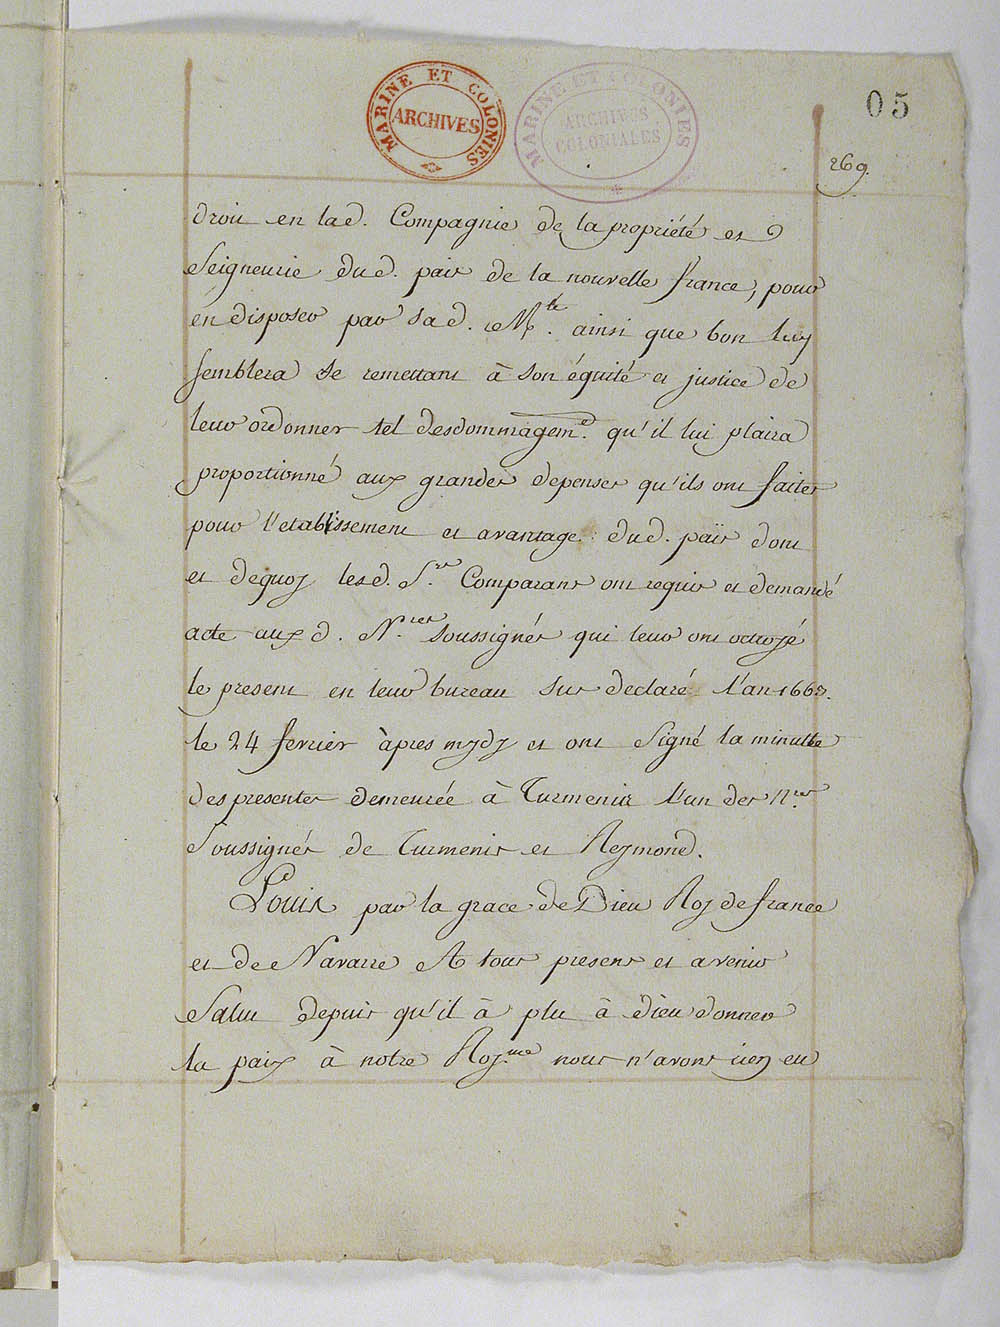 Declaration from the King, reassuming possession of New France, March 1663, FR CAOM COL C11A 2 fol. 5-7